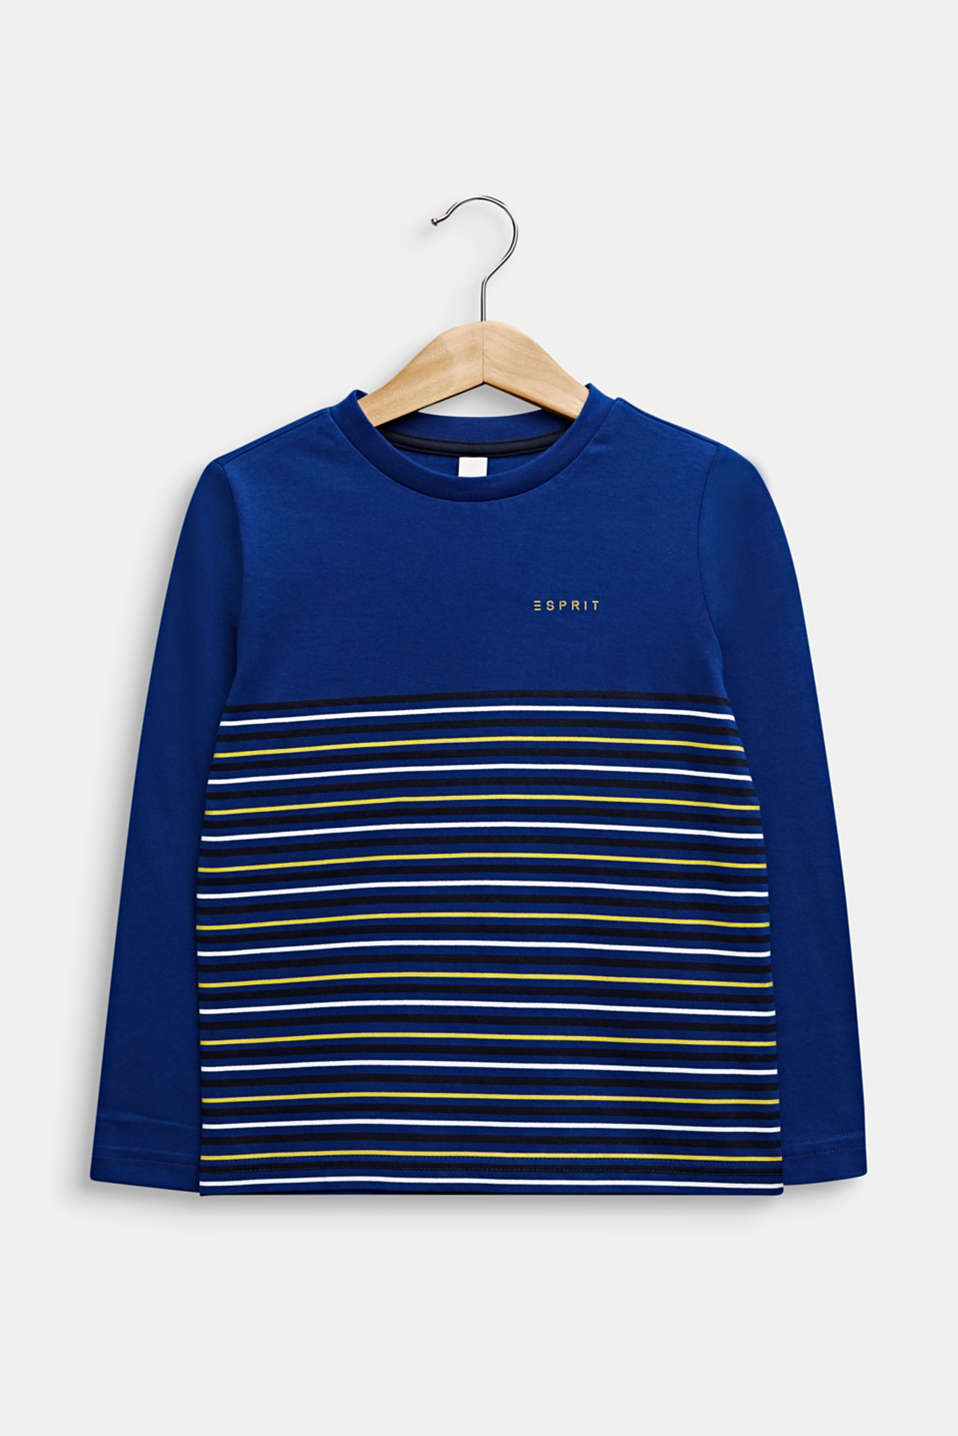 Esprit - Long sleeve top with stripes, 100% cotton